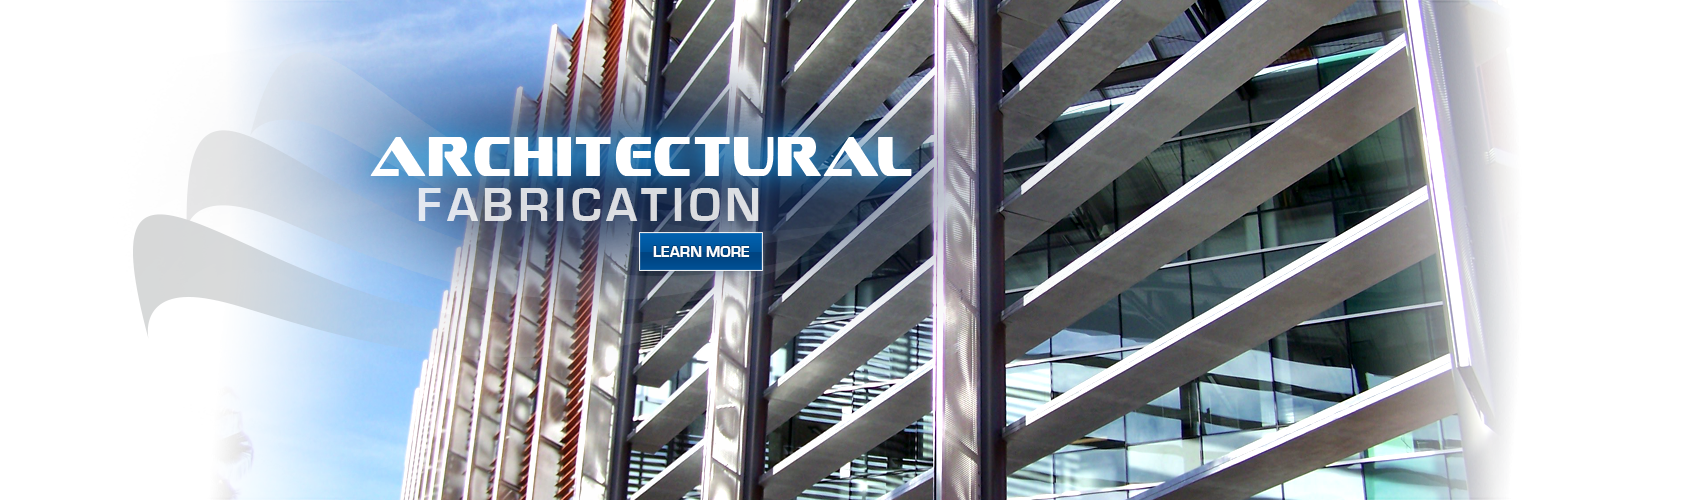 architectural-fabrication